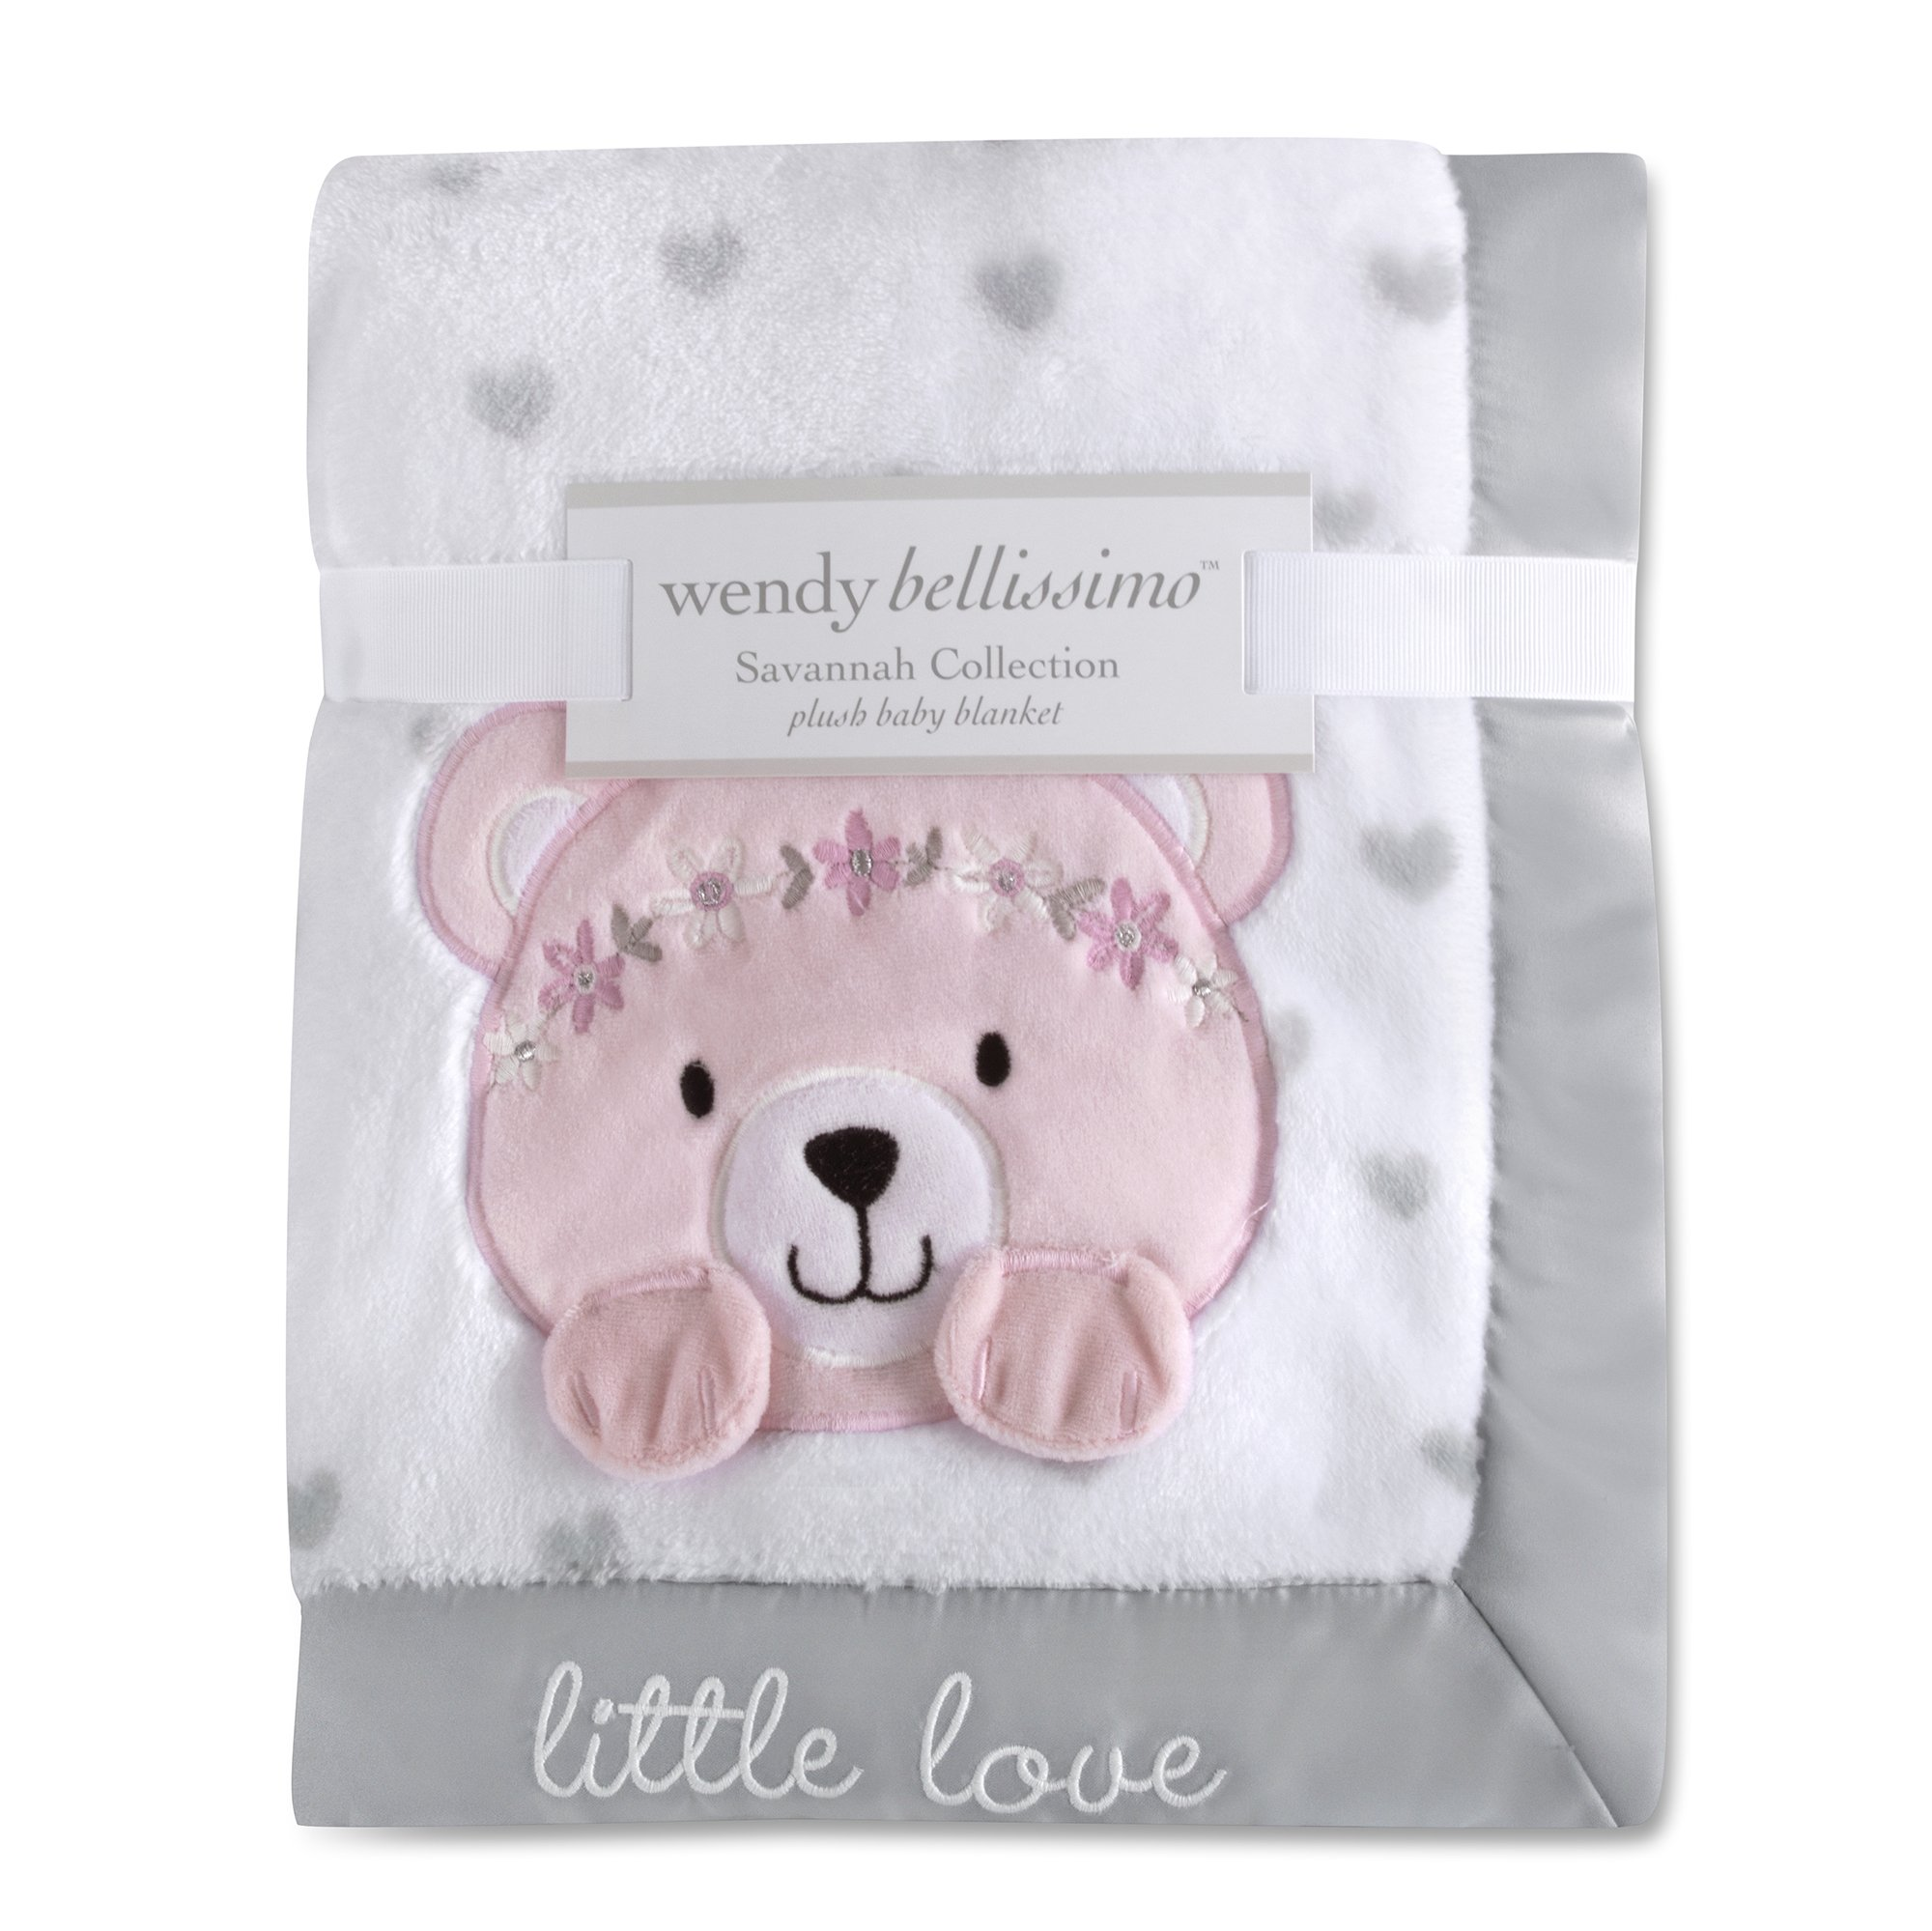 Wendy Bellissimo Super Soft Plush Baby Blanket - Bear Baby Blanket from the Savannah Collection in White & Grey